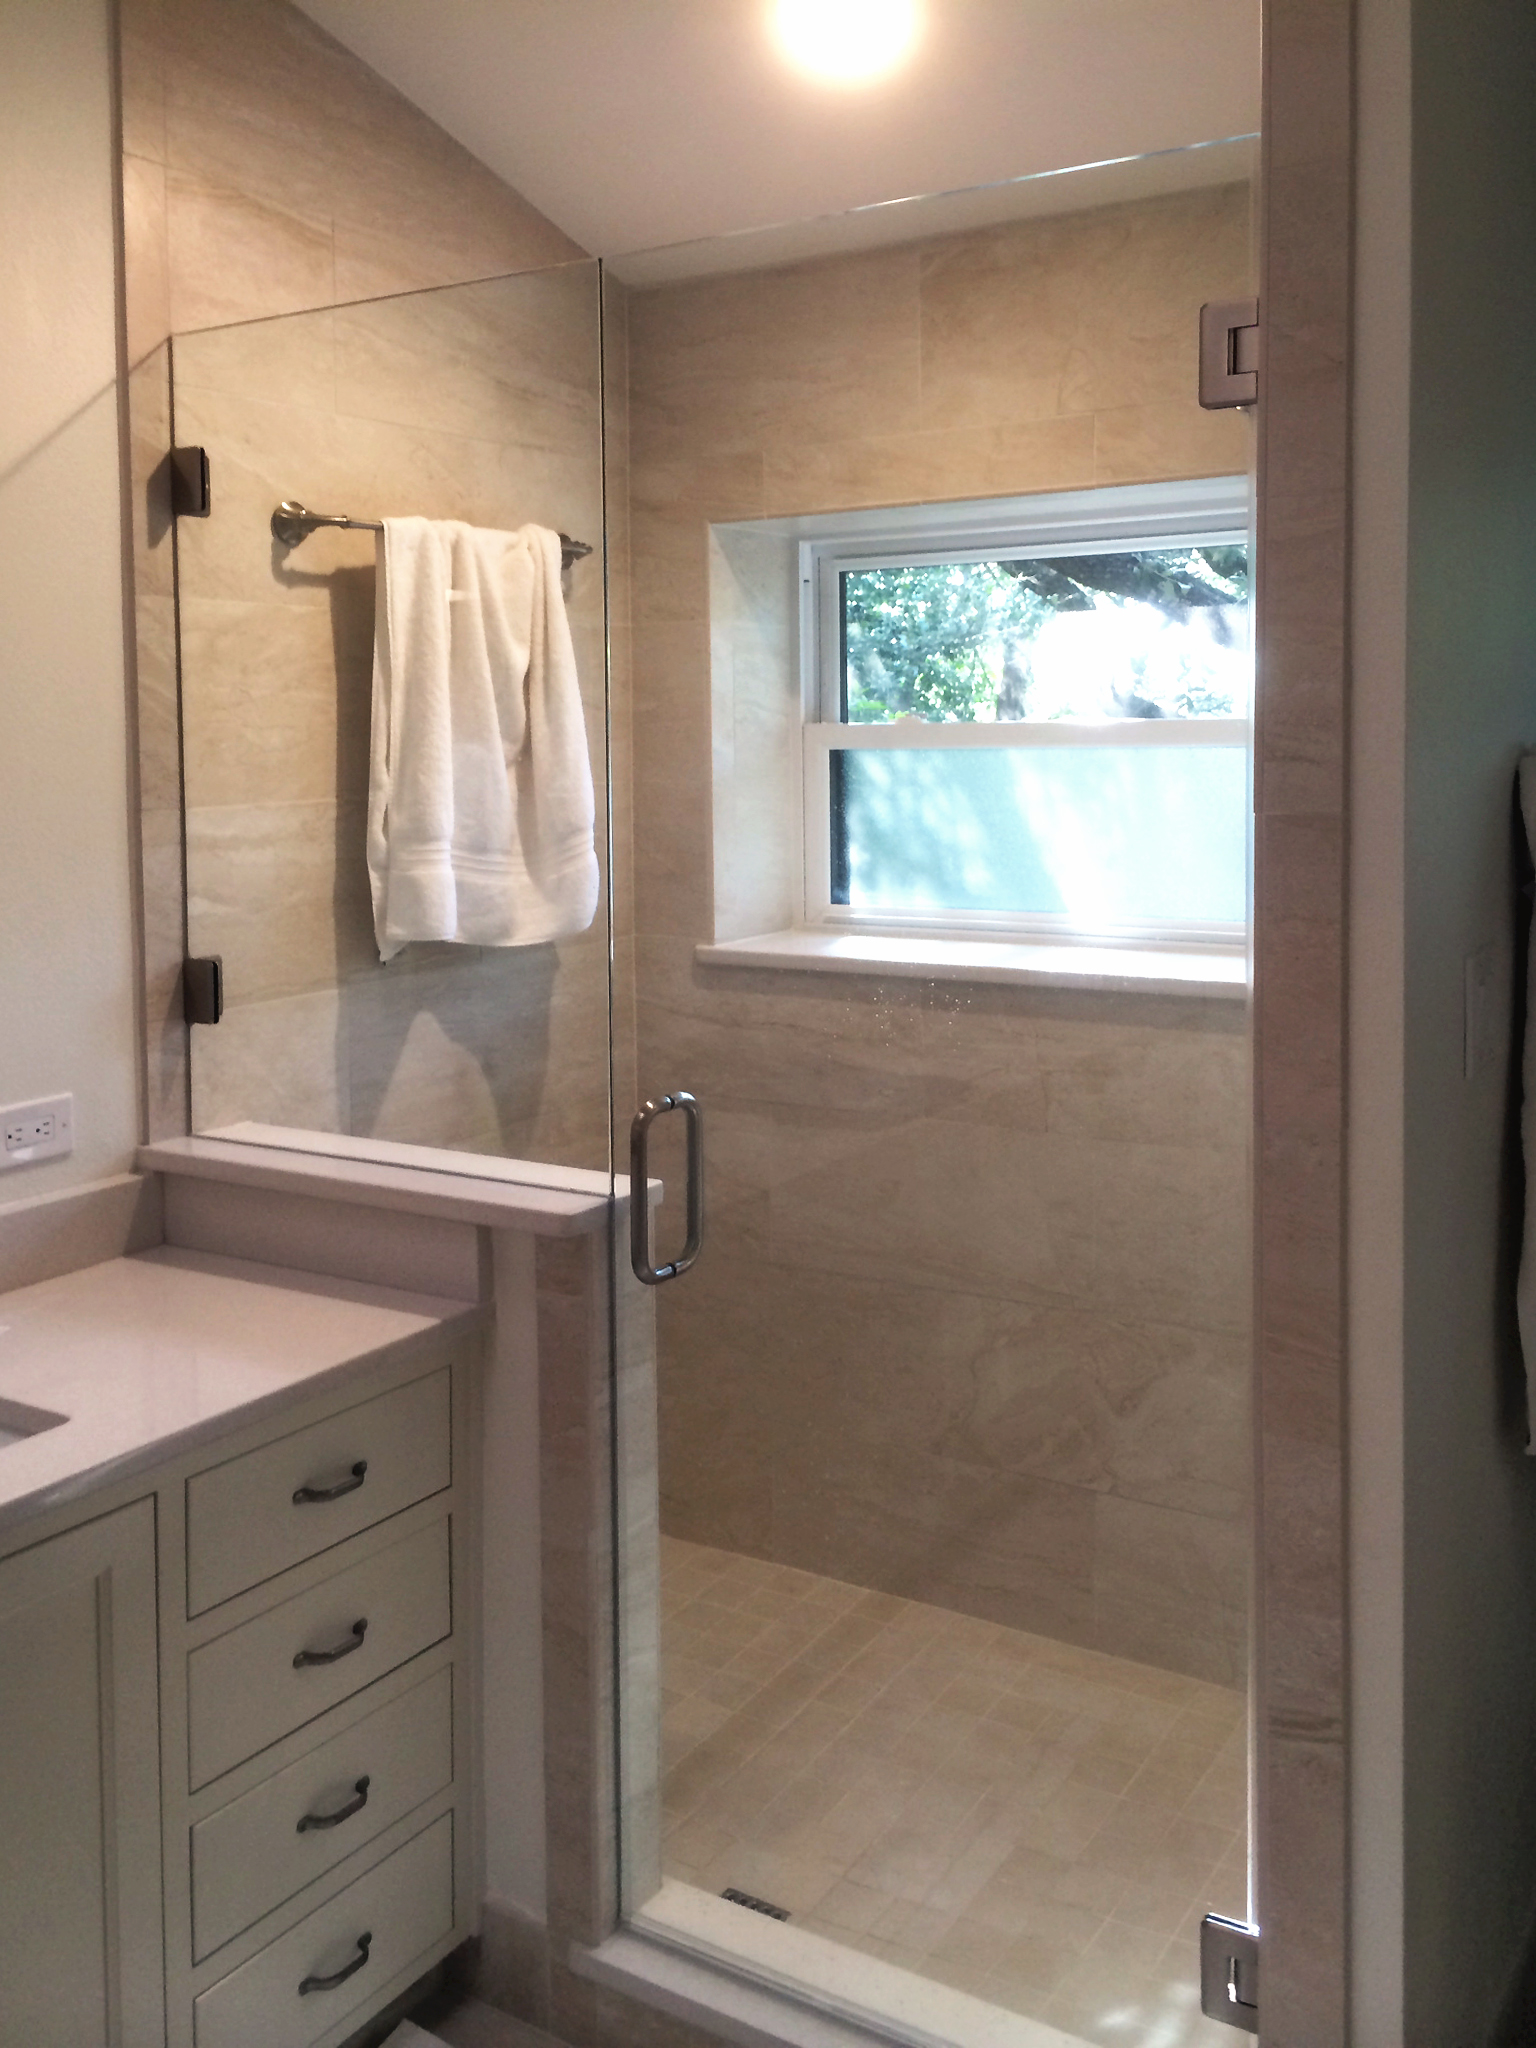 #15.  Simplicity at its best – a frameless shower door with inline panel lends this space a zen-like serenity.